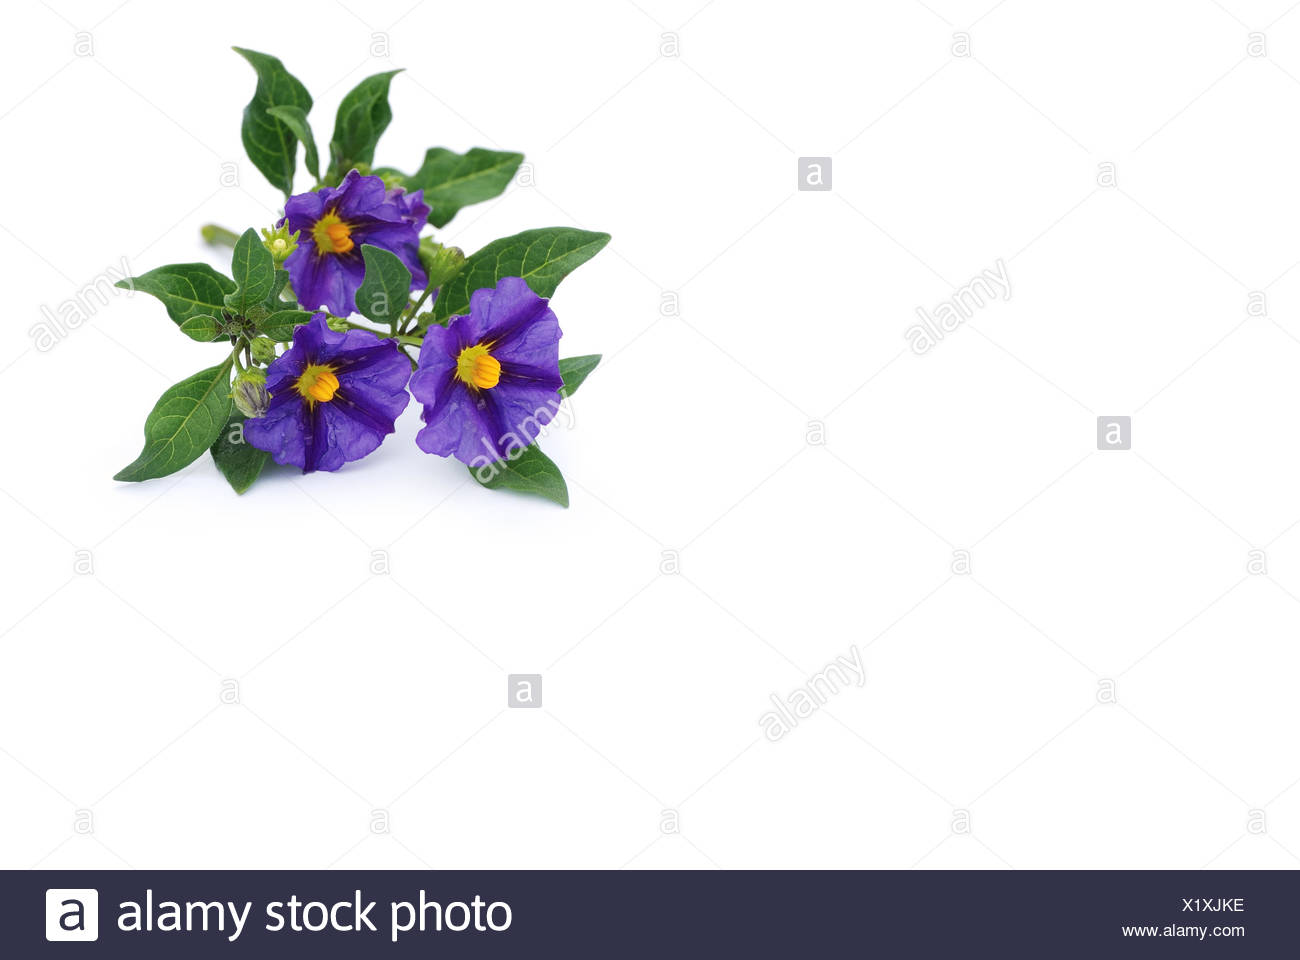 gentian strub isolated on white - Stock Image